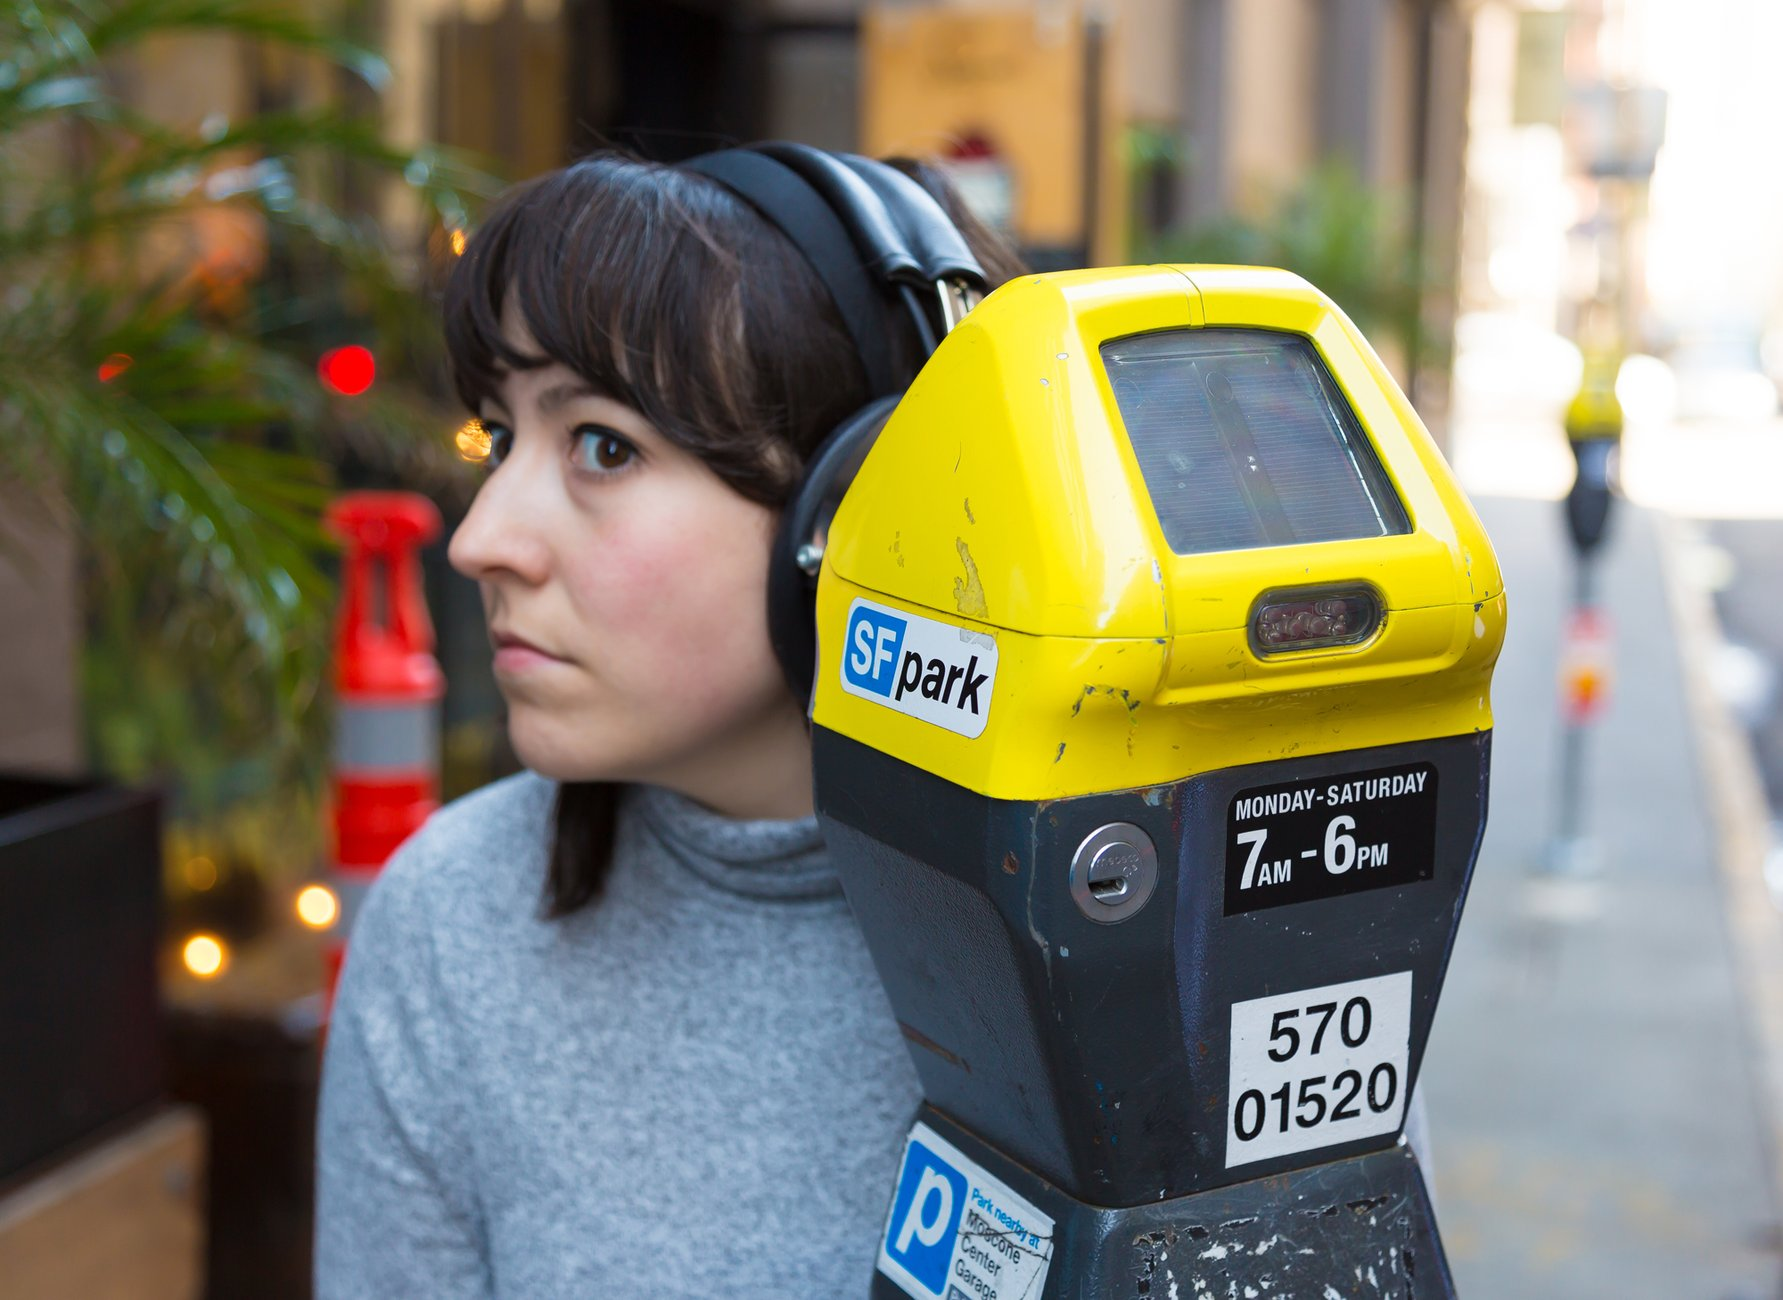 A Caucasian woman with brown hair appears to be listening to a parking meter, Kubisch Soundtracks